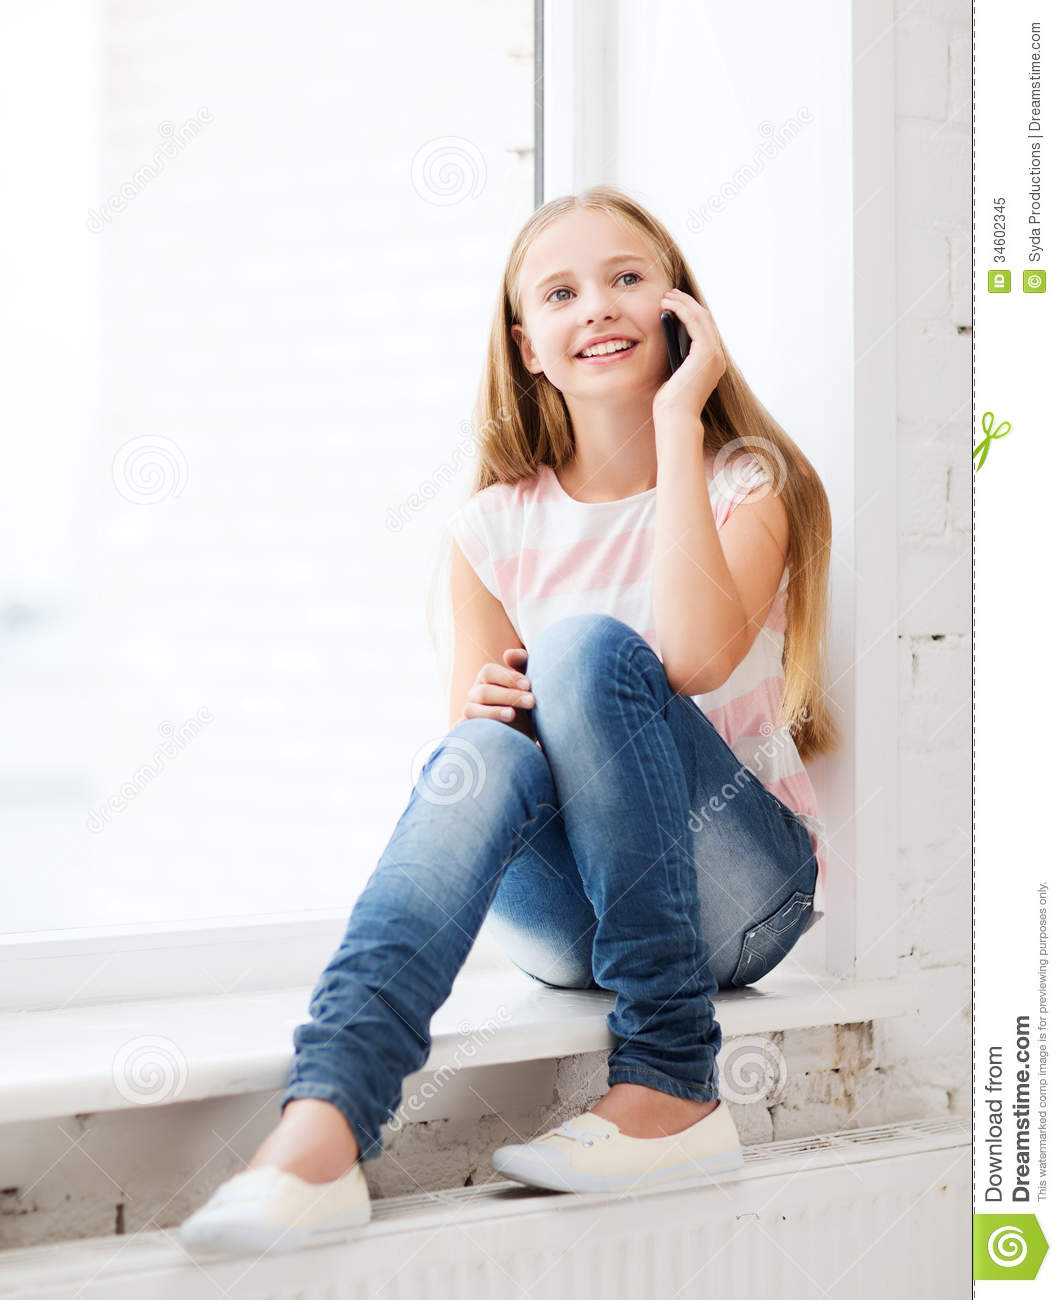 Schools Education6 25 18students: Girl With Smartphone At School Stock Image